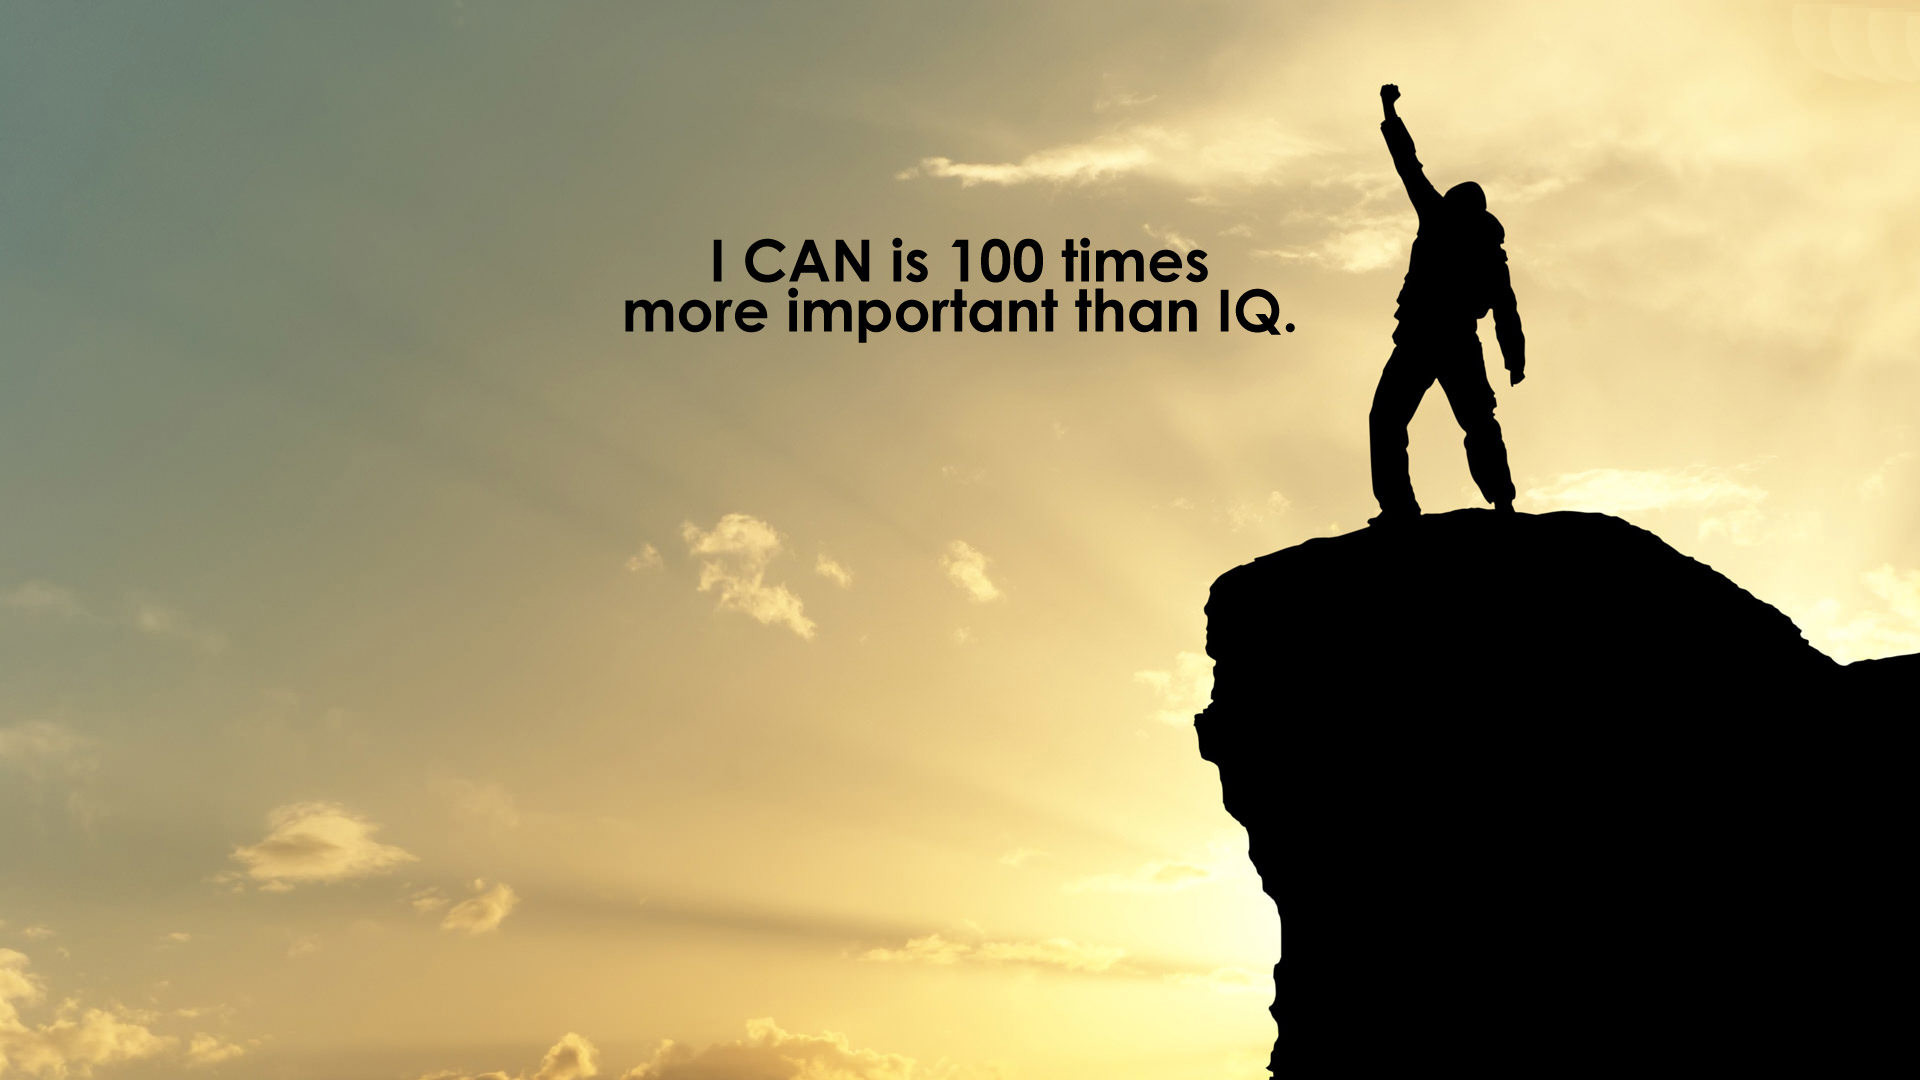 1920x1080 I Can Is 100 Times More Important Than IQ.